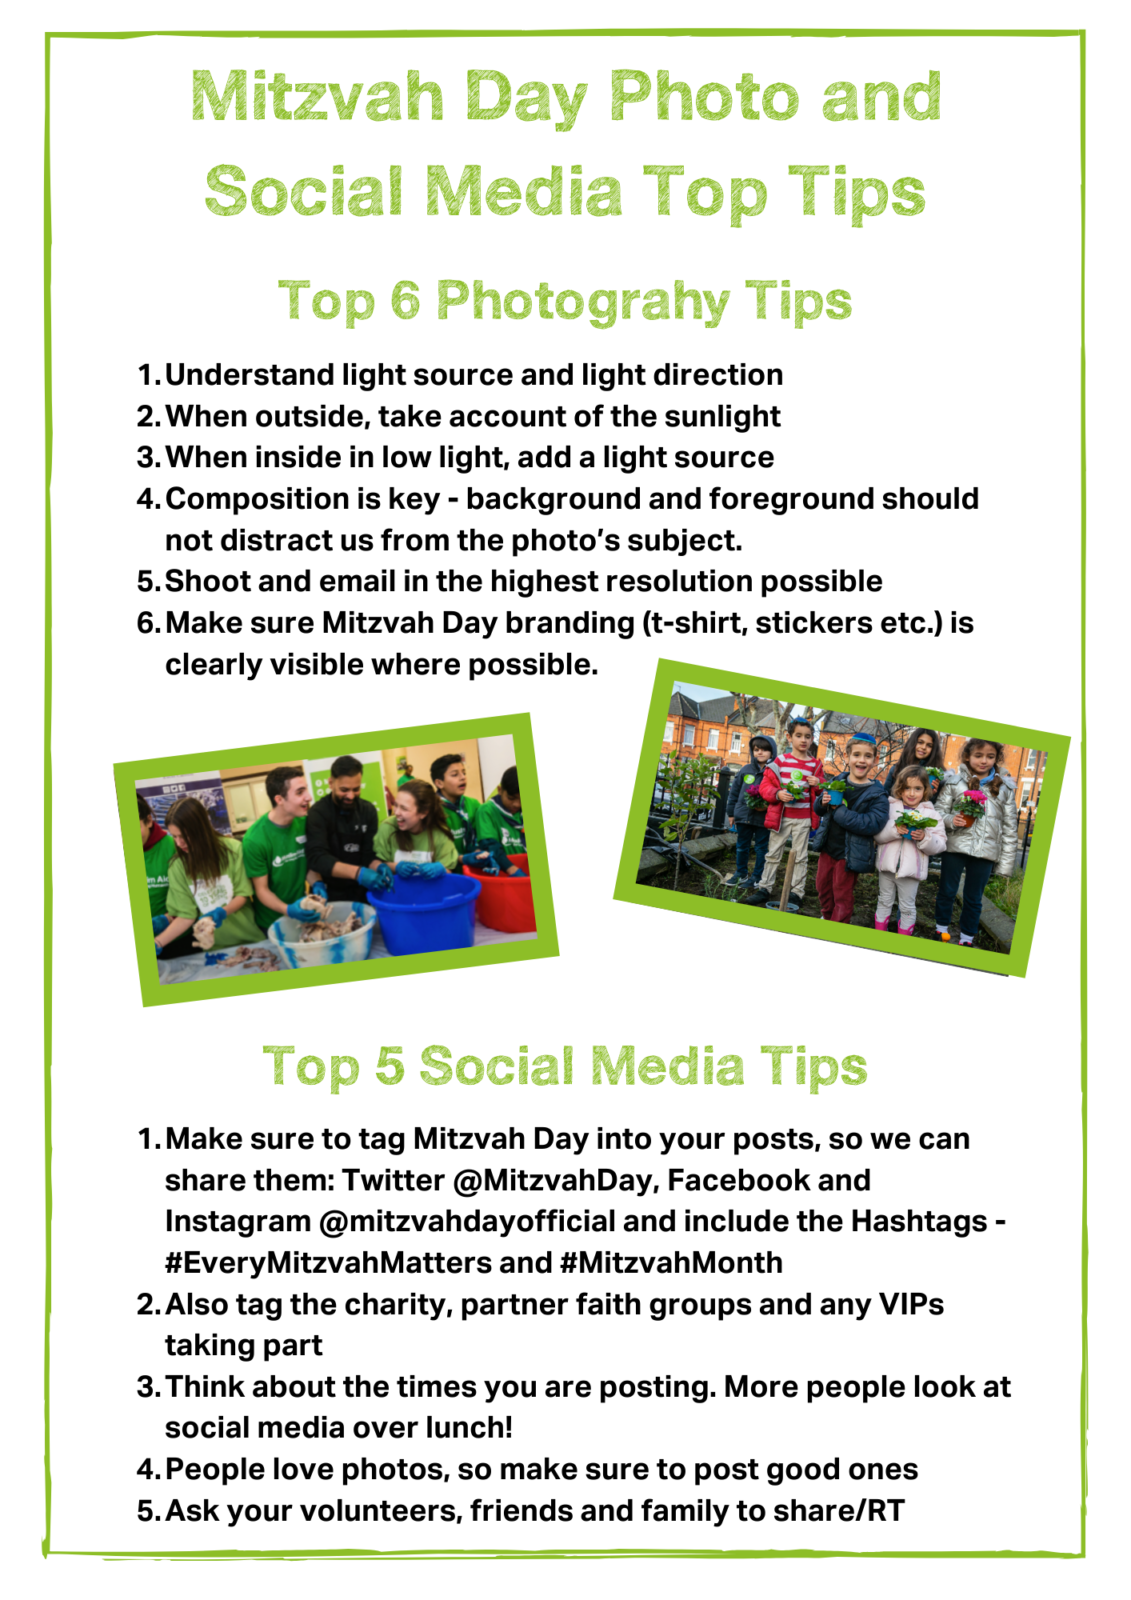 How To Take Great Photos and Share Them!